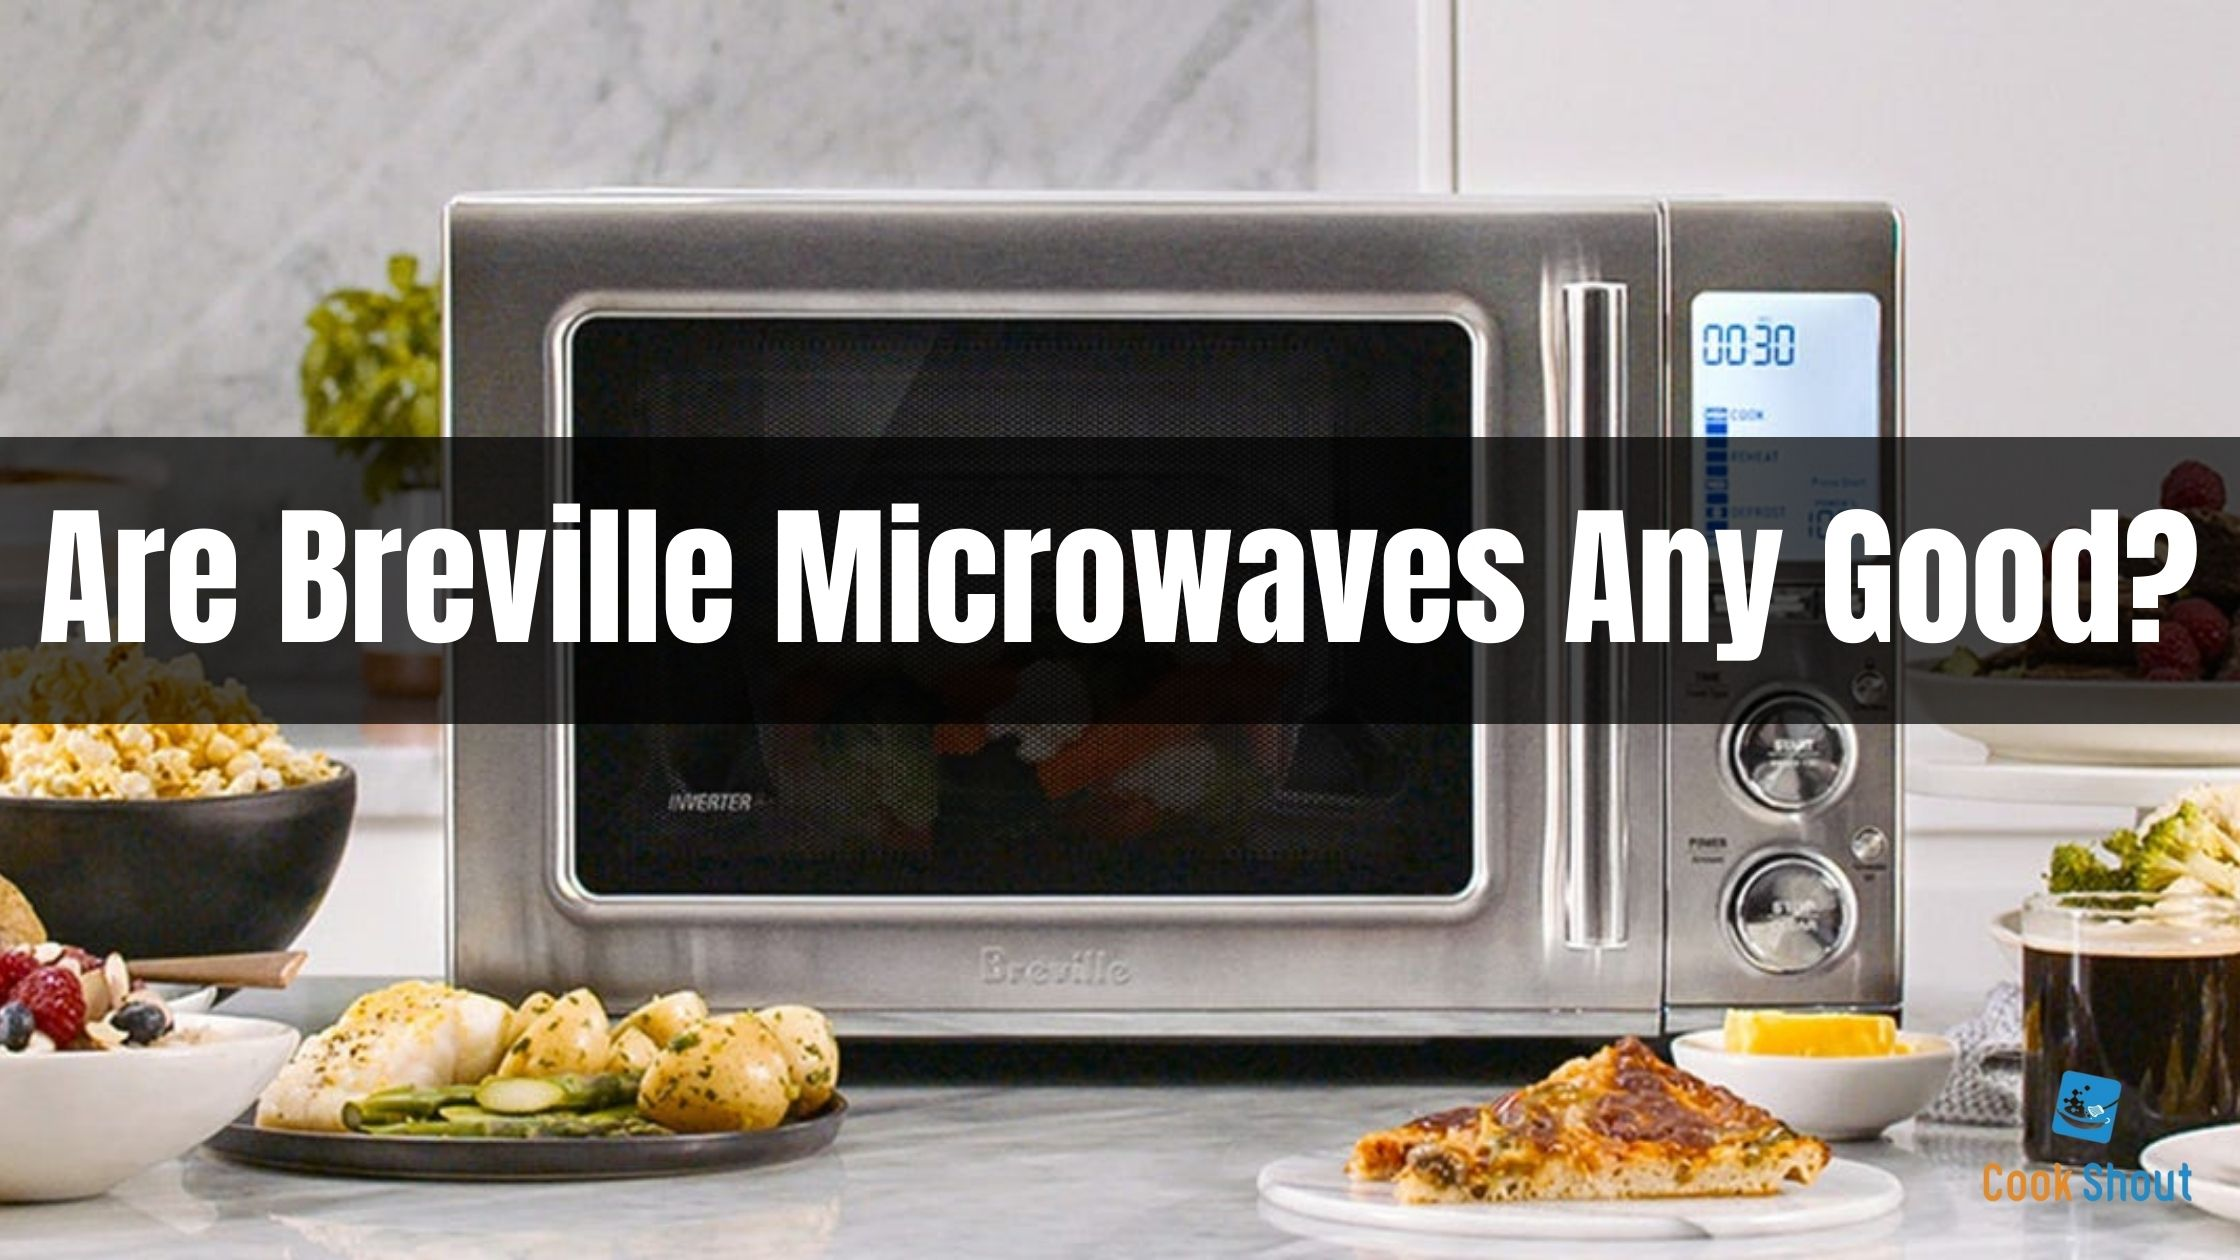 Are Breville Microwaves Any Good